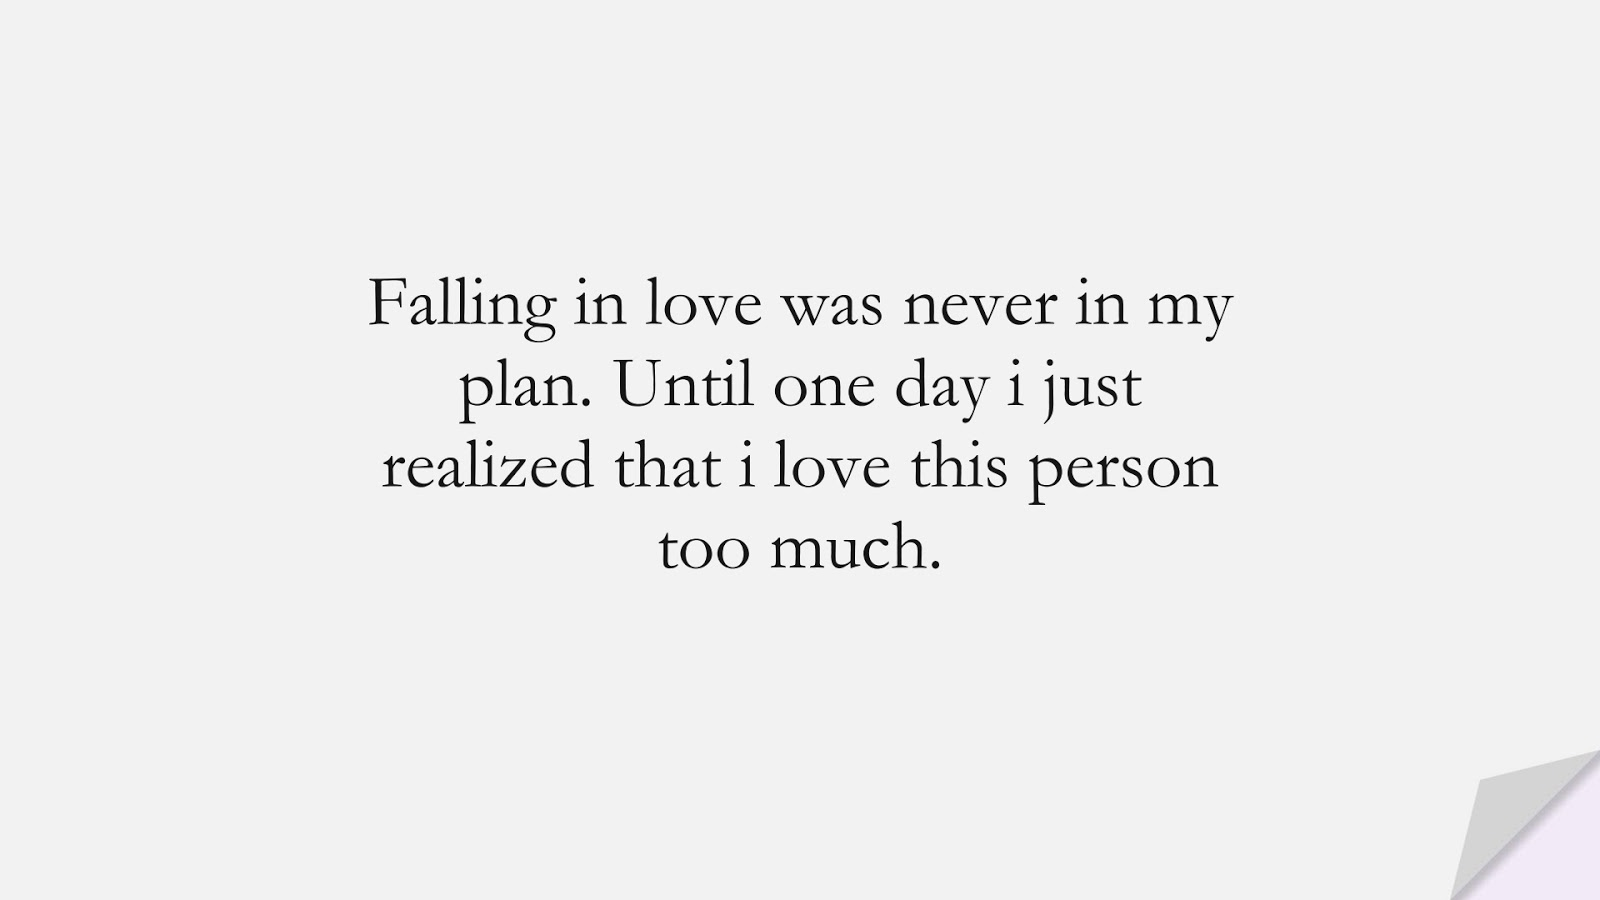 Falling in love was never in my plan. Until one day i just realized that i love this person too much.FALSE